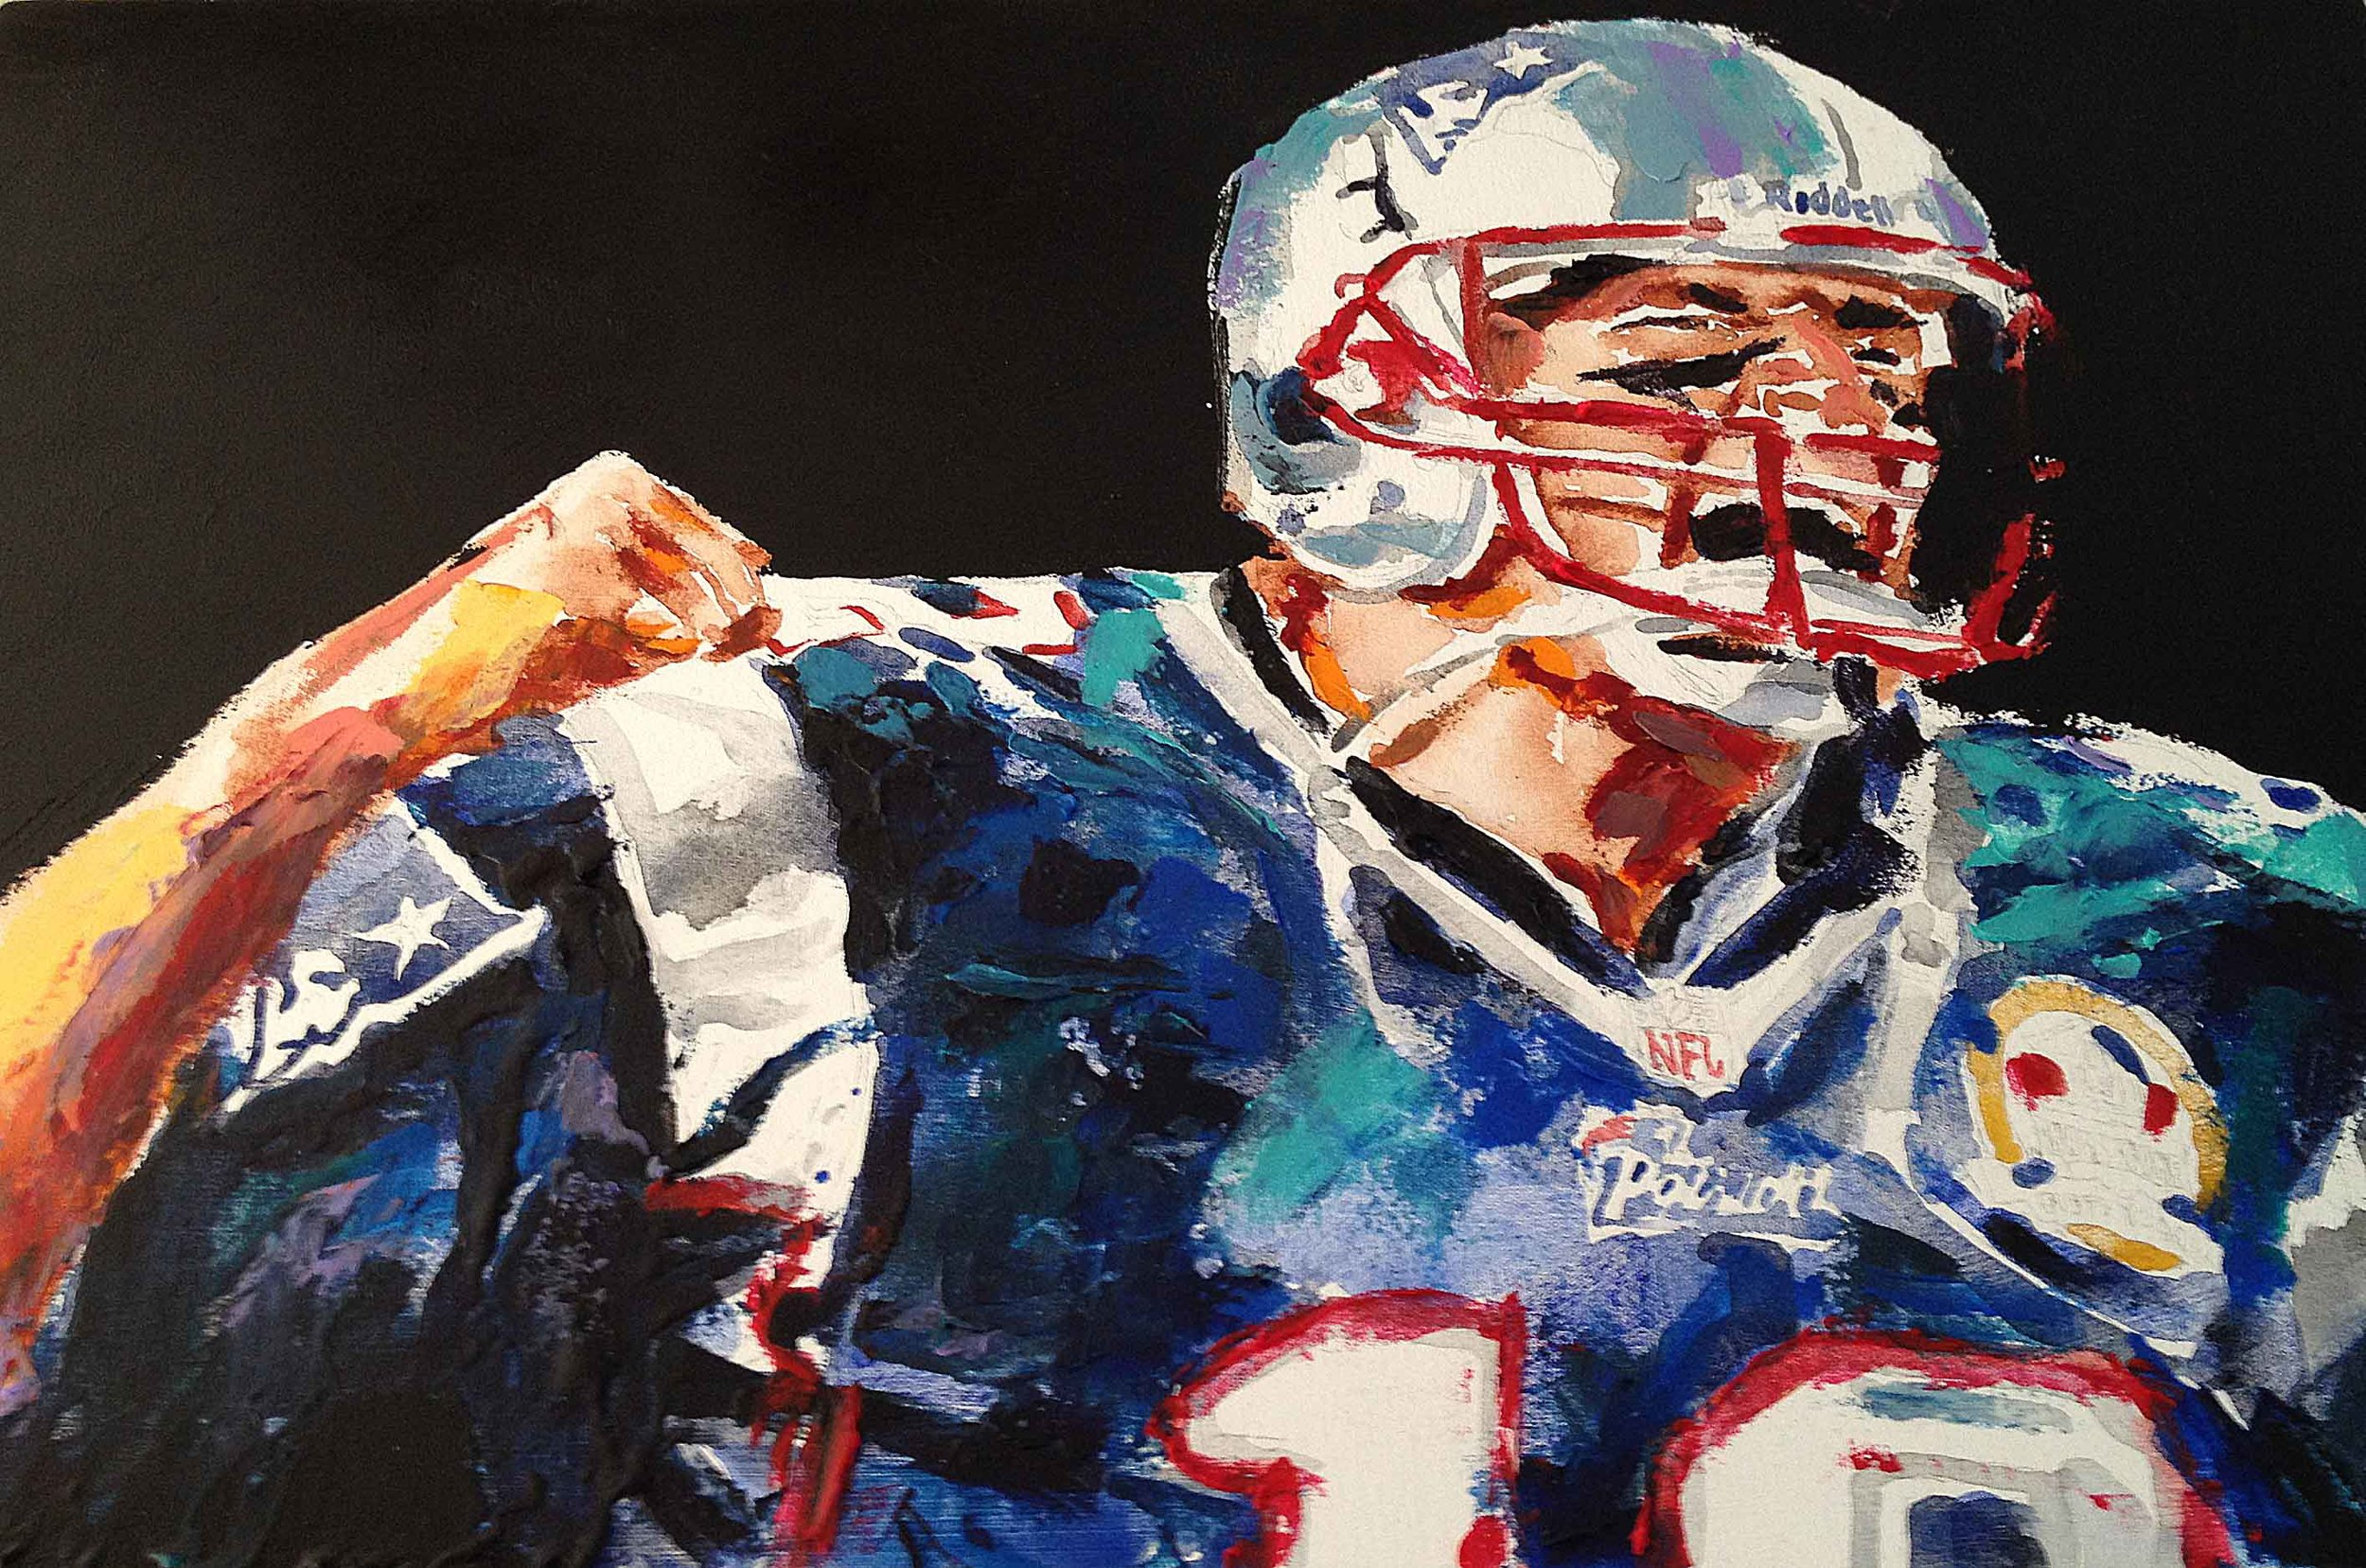 tom brady prints  available here  - all proceeds go to Do it for Donna